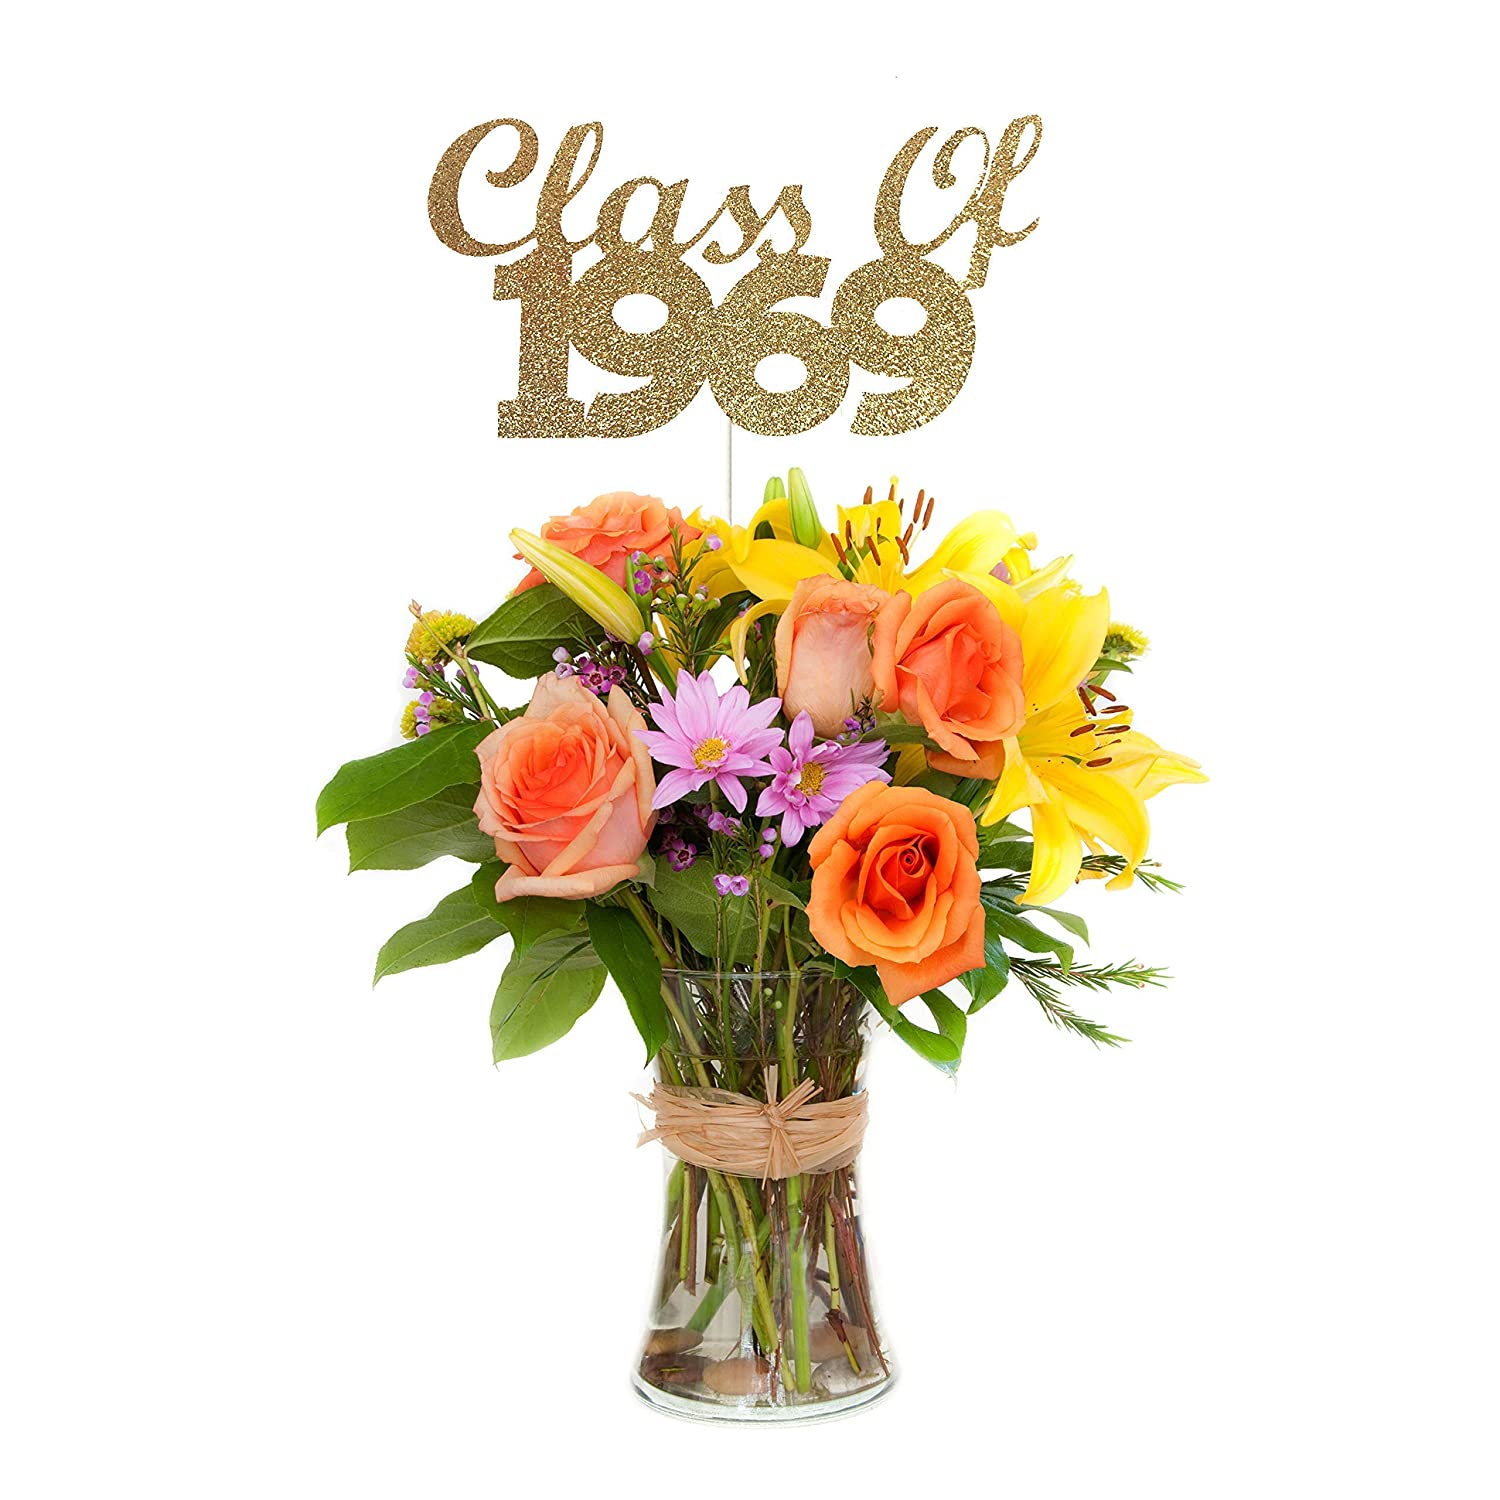 Class of 1969 Centerpiece Stick, 50th Class Reunion Centerpiece Stick